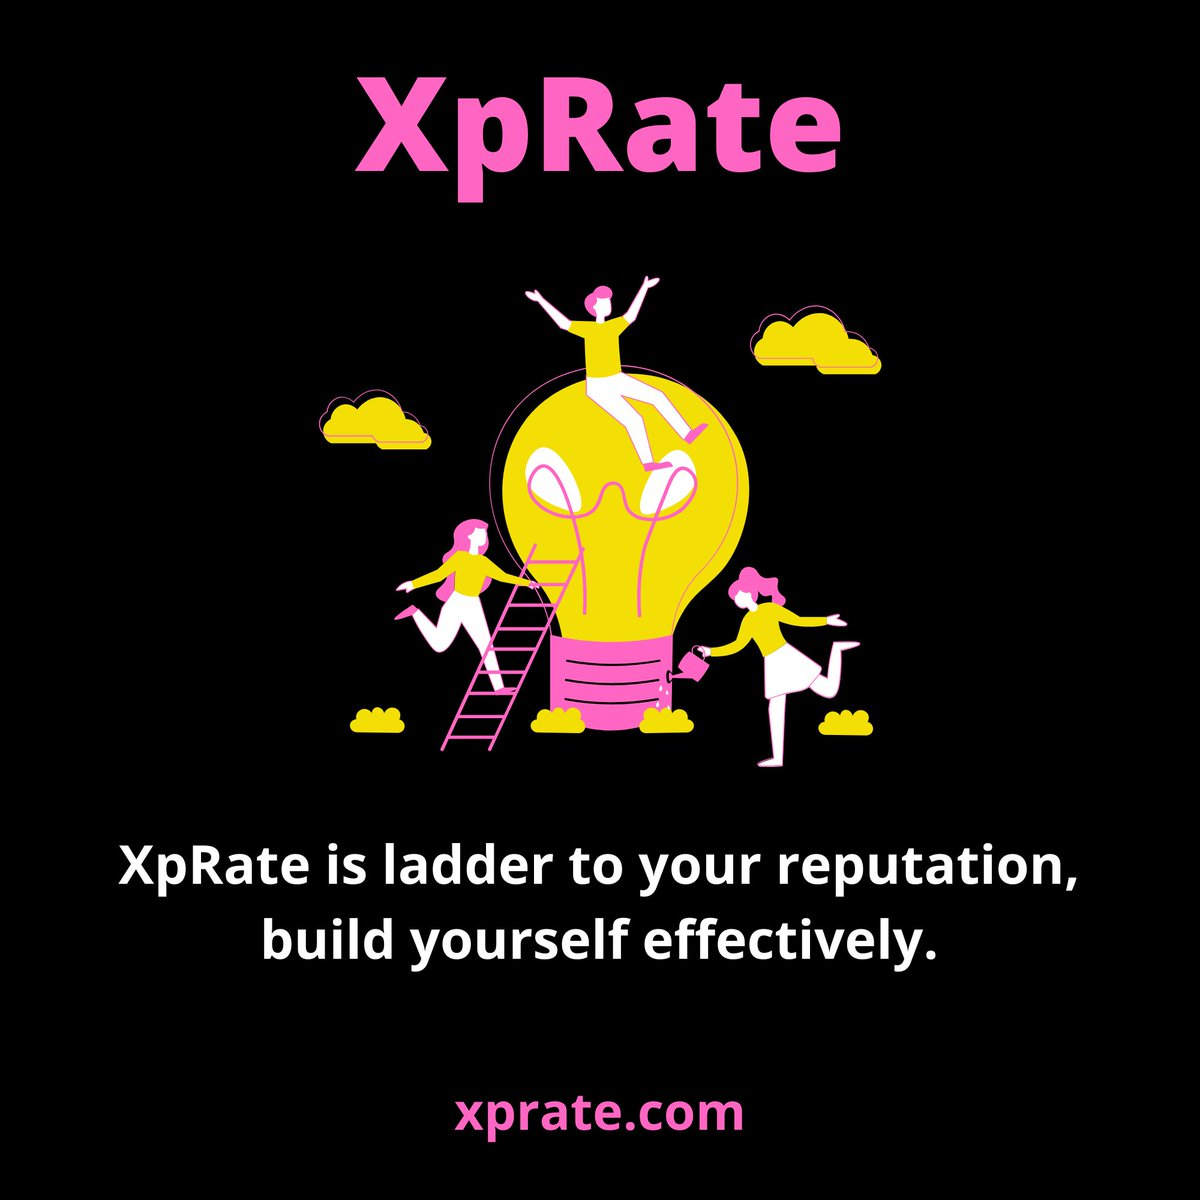 Reputation and influence must be earned. XpRate is the quickest way to show your audience how good you are 💯  Happy Rating 🌈 Sign Up Now 👇   #xprate #ratings #Review #reputation #success #entrepreneur #startups #DigitalMarketing #Investment #StockMarket